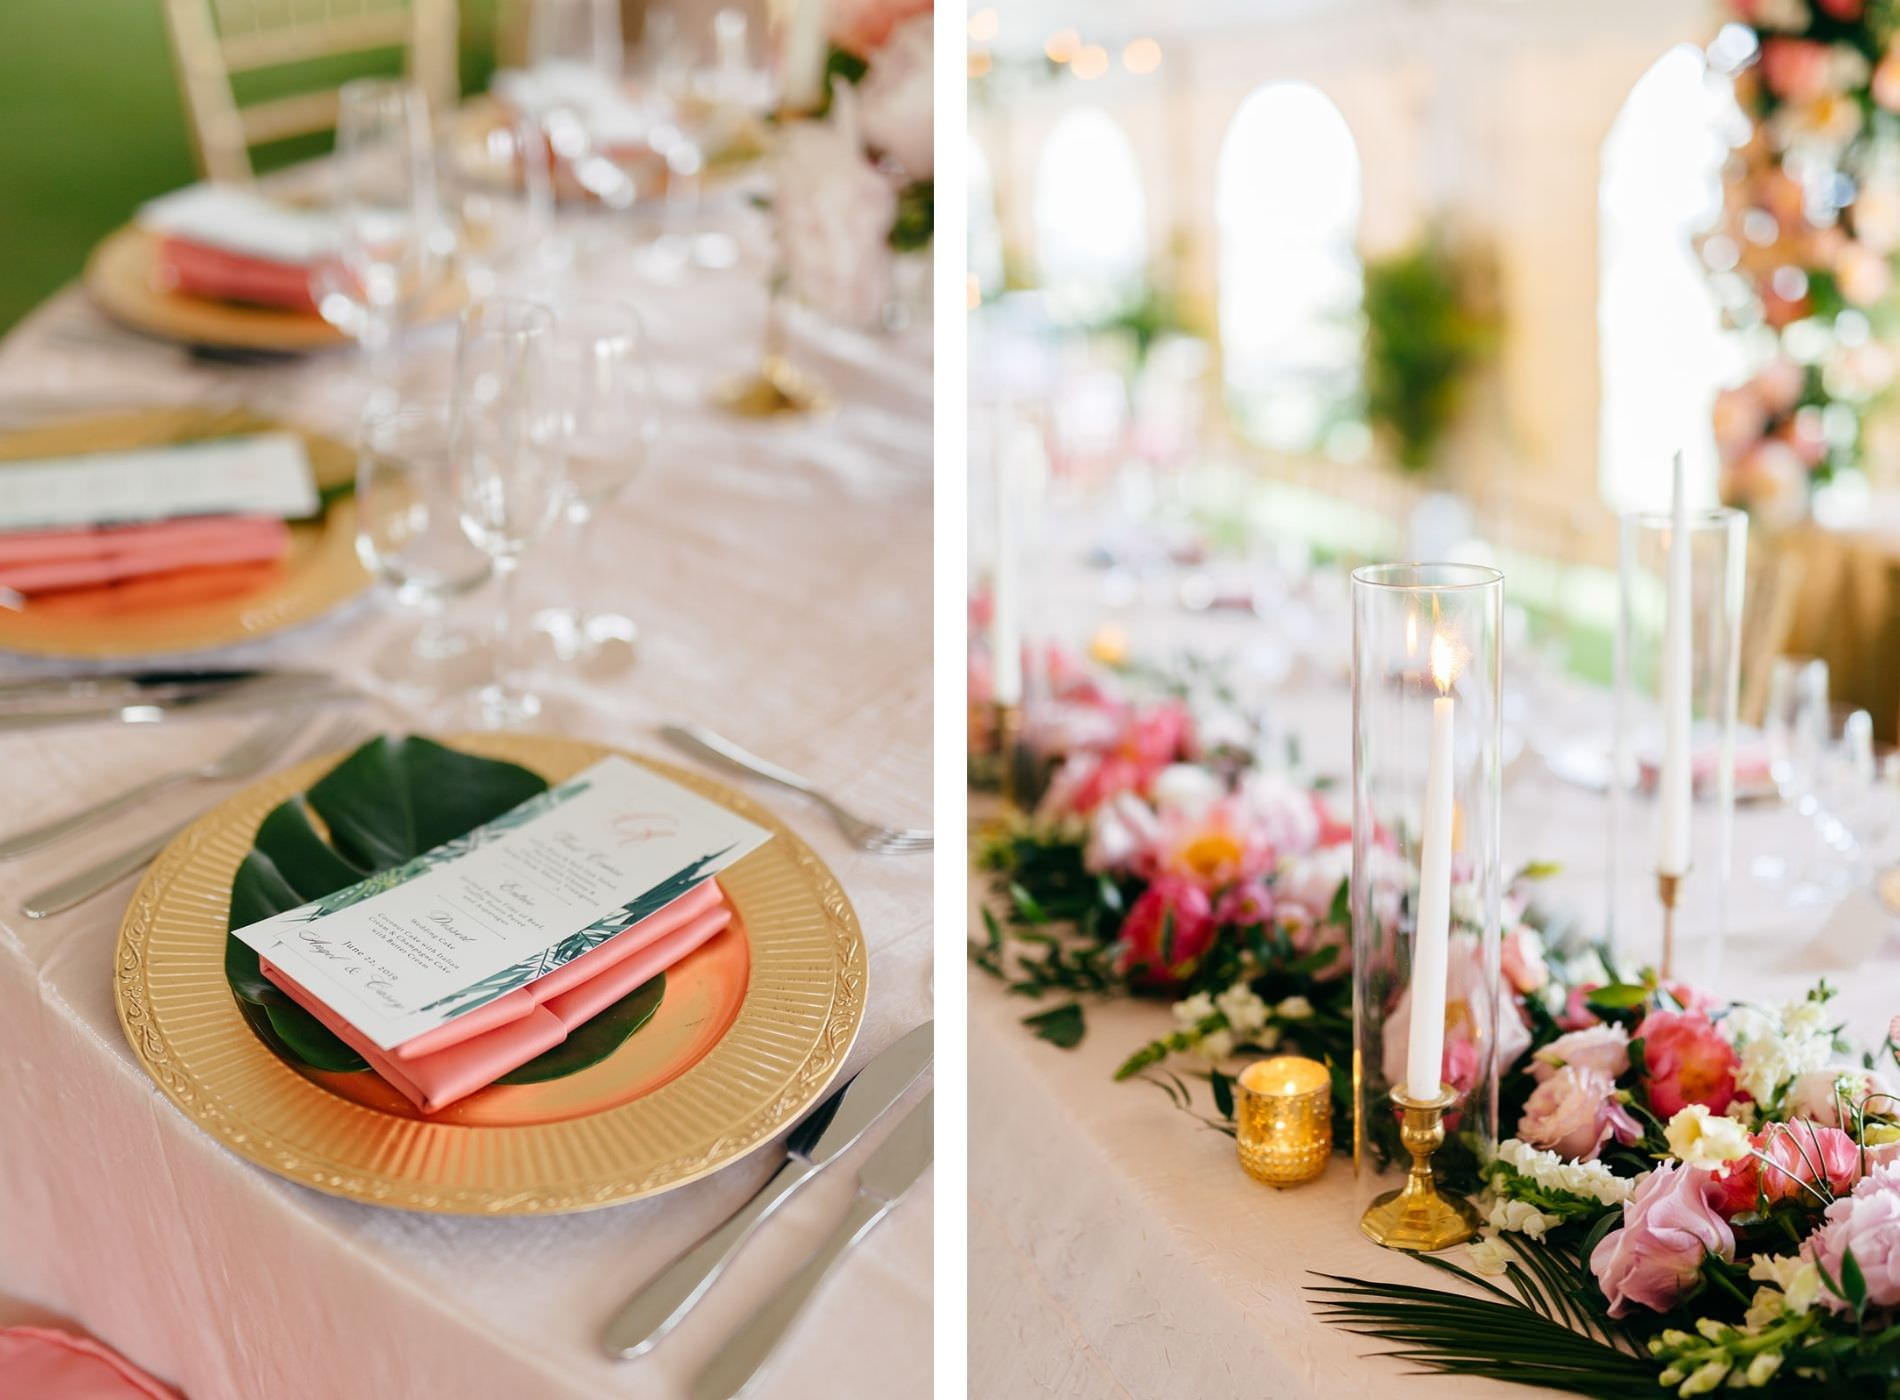 Elegant Tropical Wedding Reception Decor, Gold Chargers with Monstera Palm Tree Leaf and Custom Menu, Pink Linen Napkin, Gold Candlesticks, Lush Floral Table Runner   Tampa Bay Wedding Planner NK Weddings